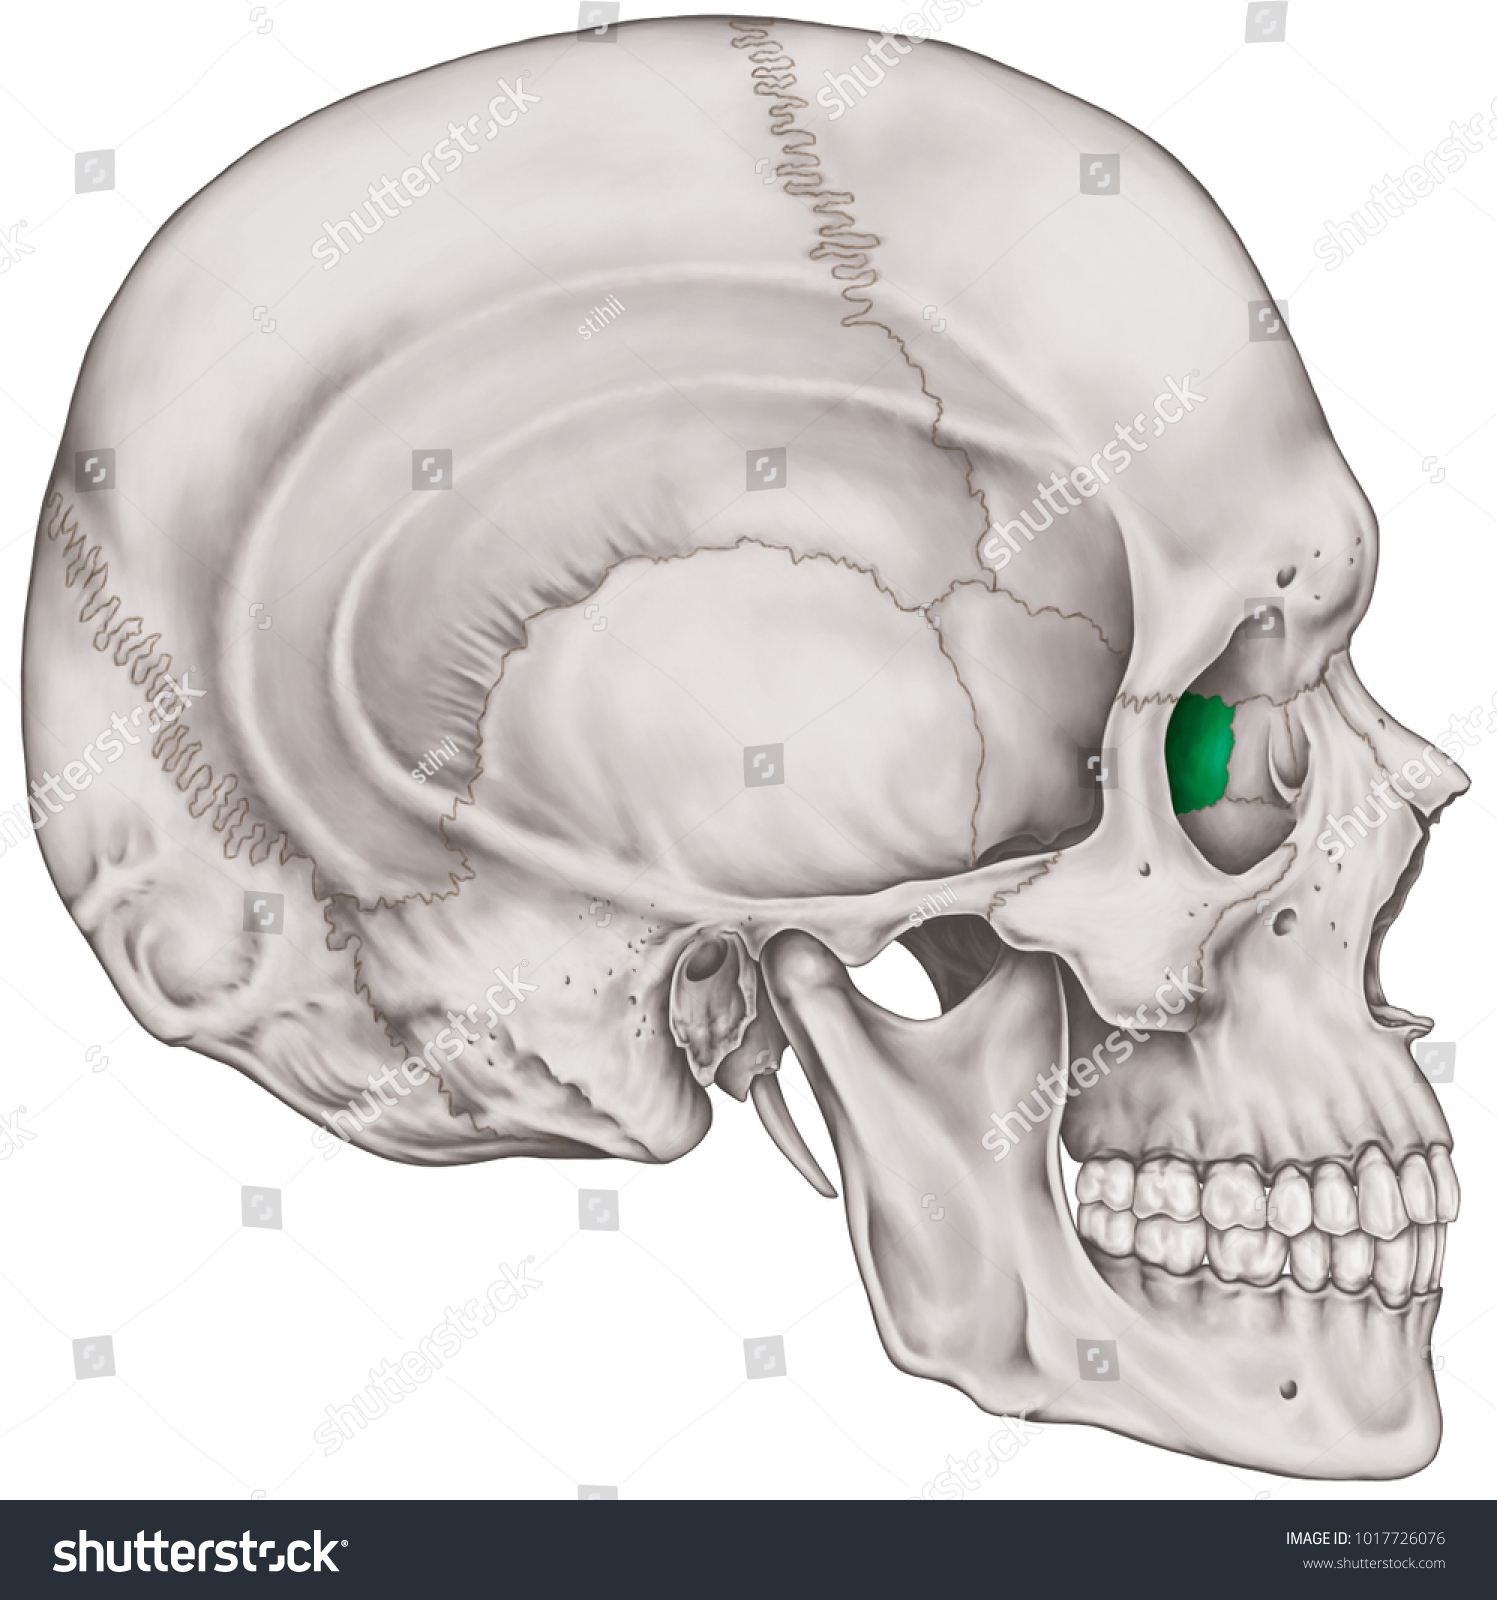 Ethmoid Bone Cranium Bones Head Skull Stock Illustration 1017726076 ...